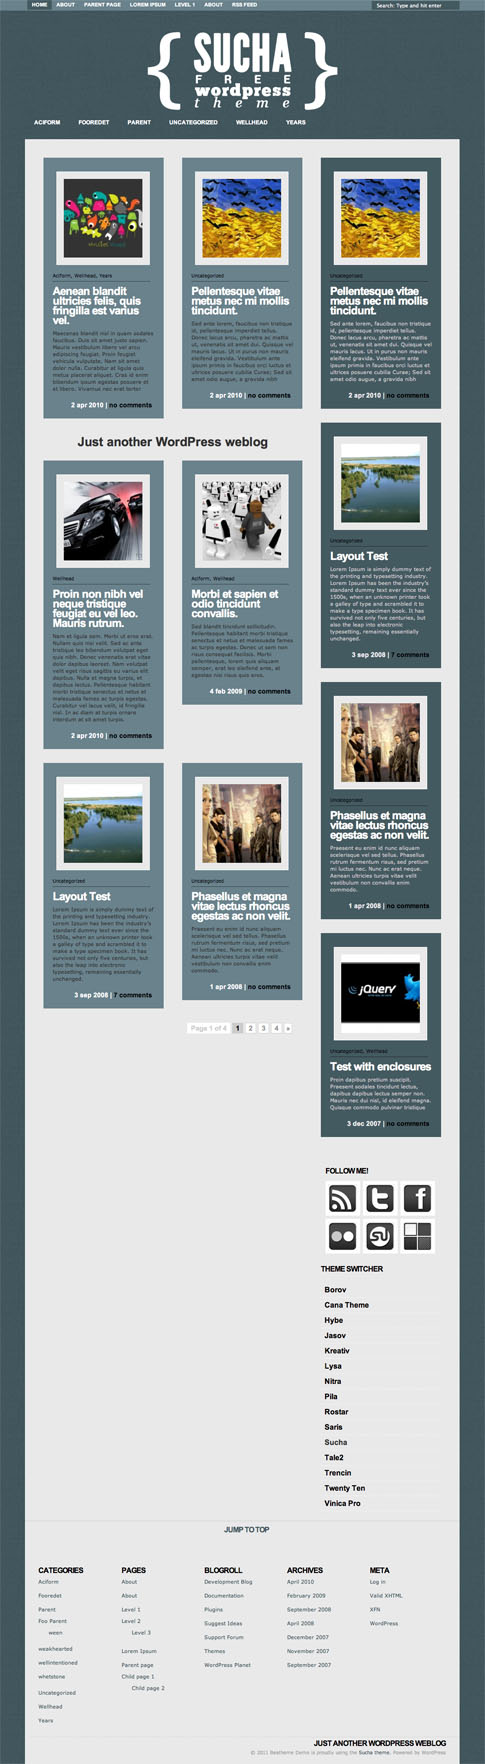 Sucha Free WordPress Theme